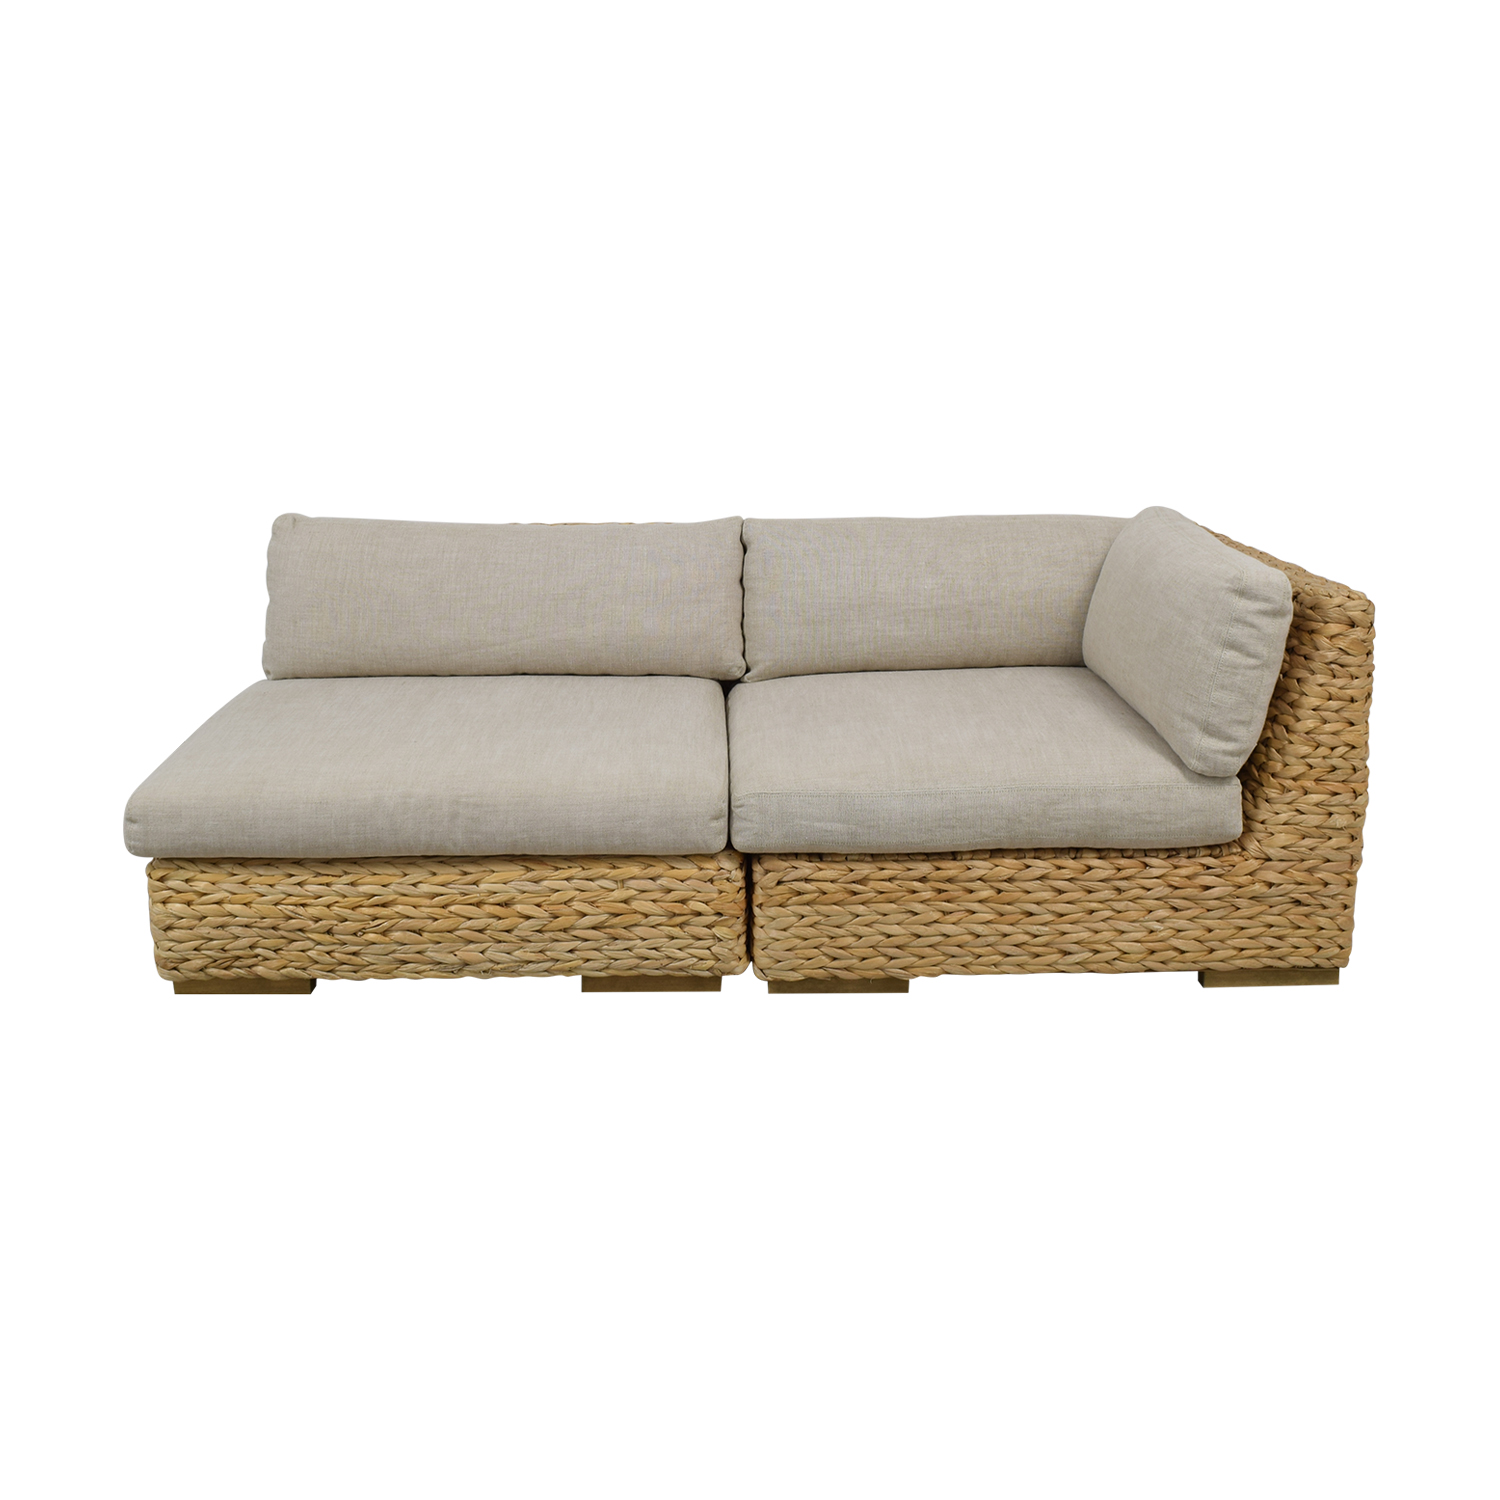 Restoration Hardware Restoration Hardware Beige and Grey Wicker Two-Piece Sectional price